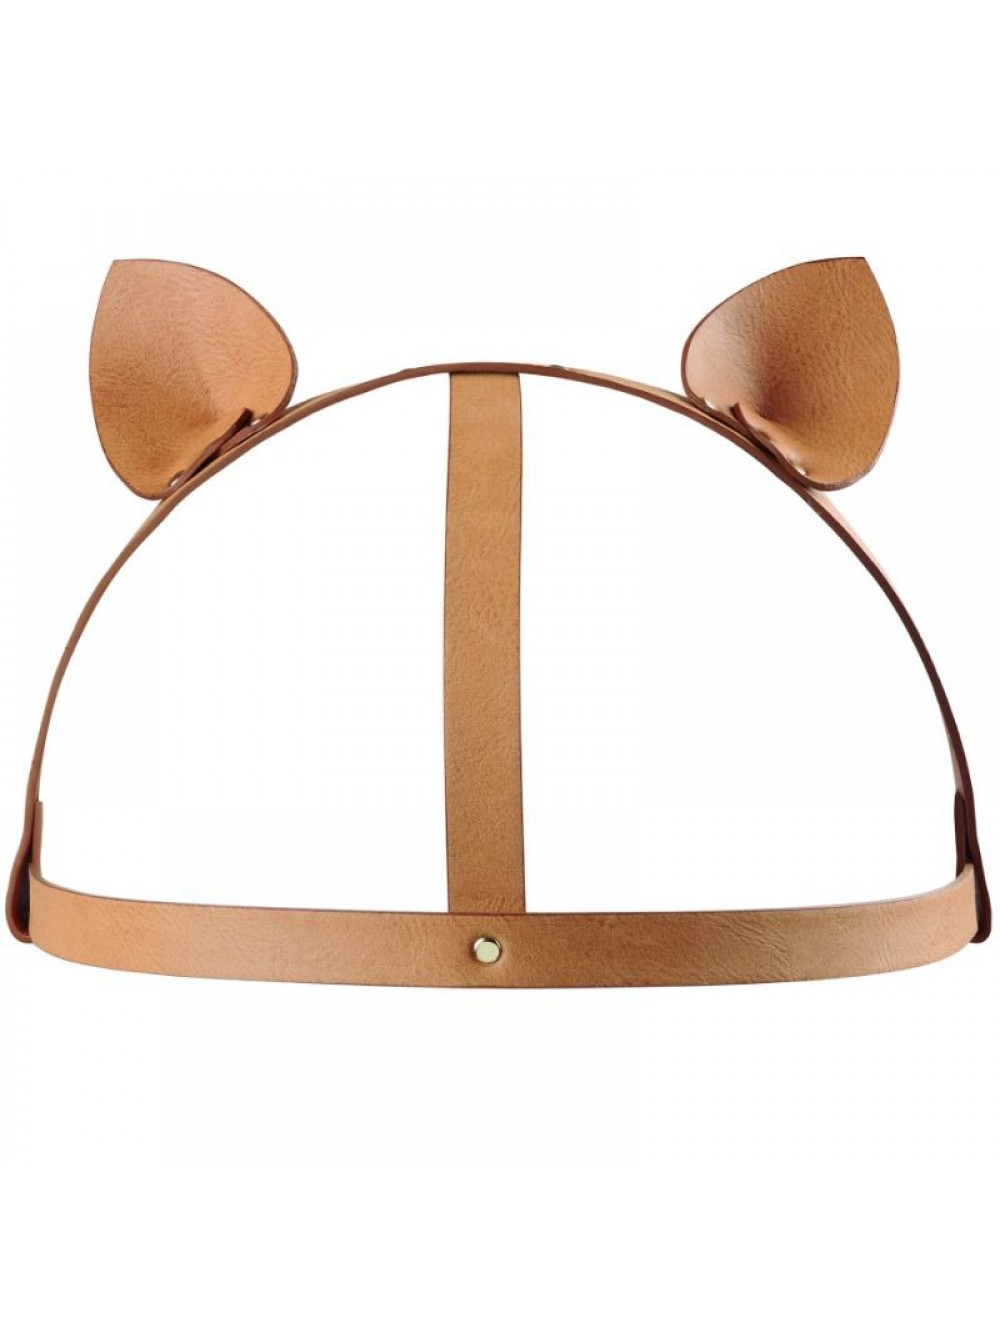 BIJOUX INDISCRETS MAZE CAT EARS HEADPIECE BROWN 8436562011666